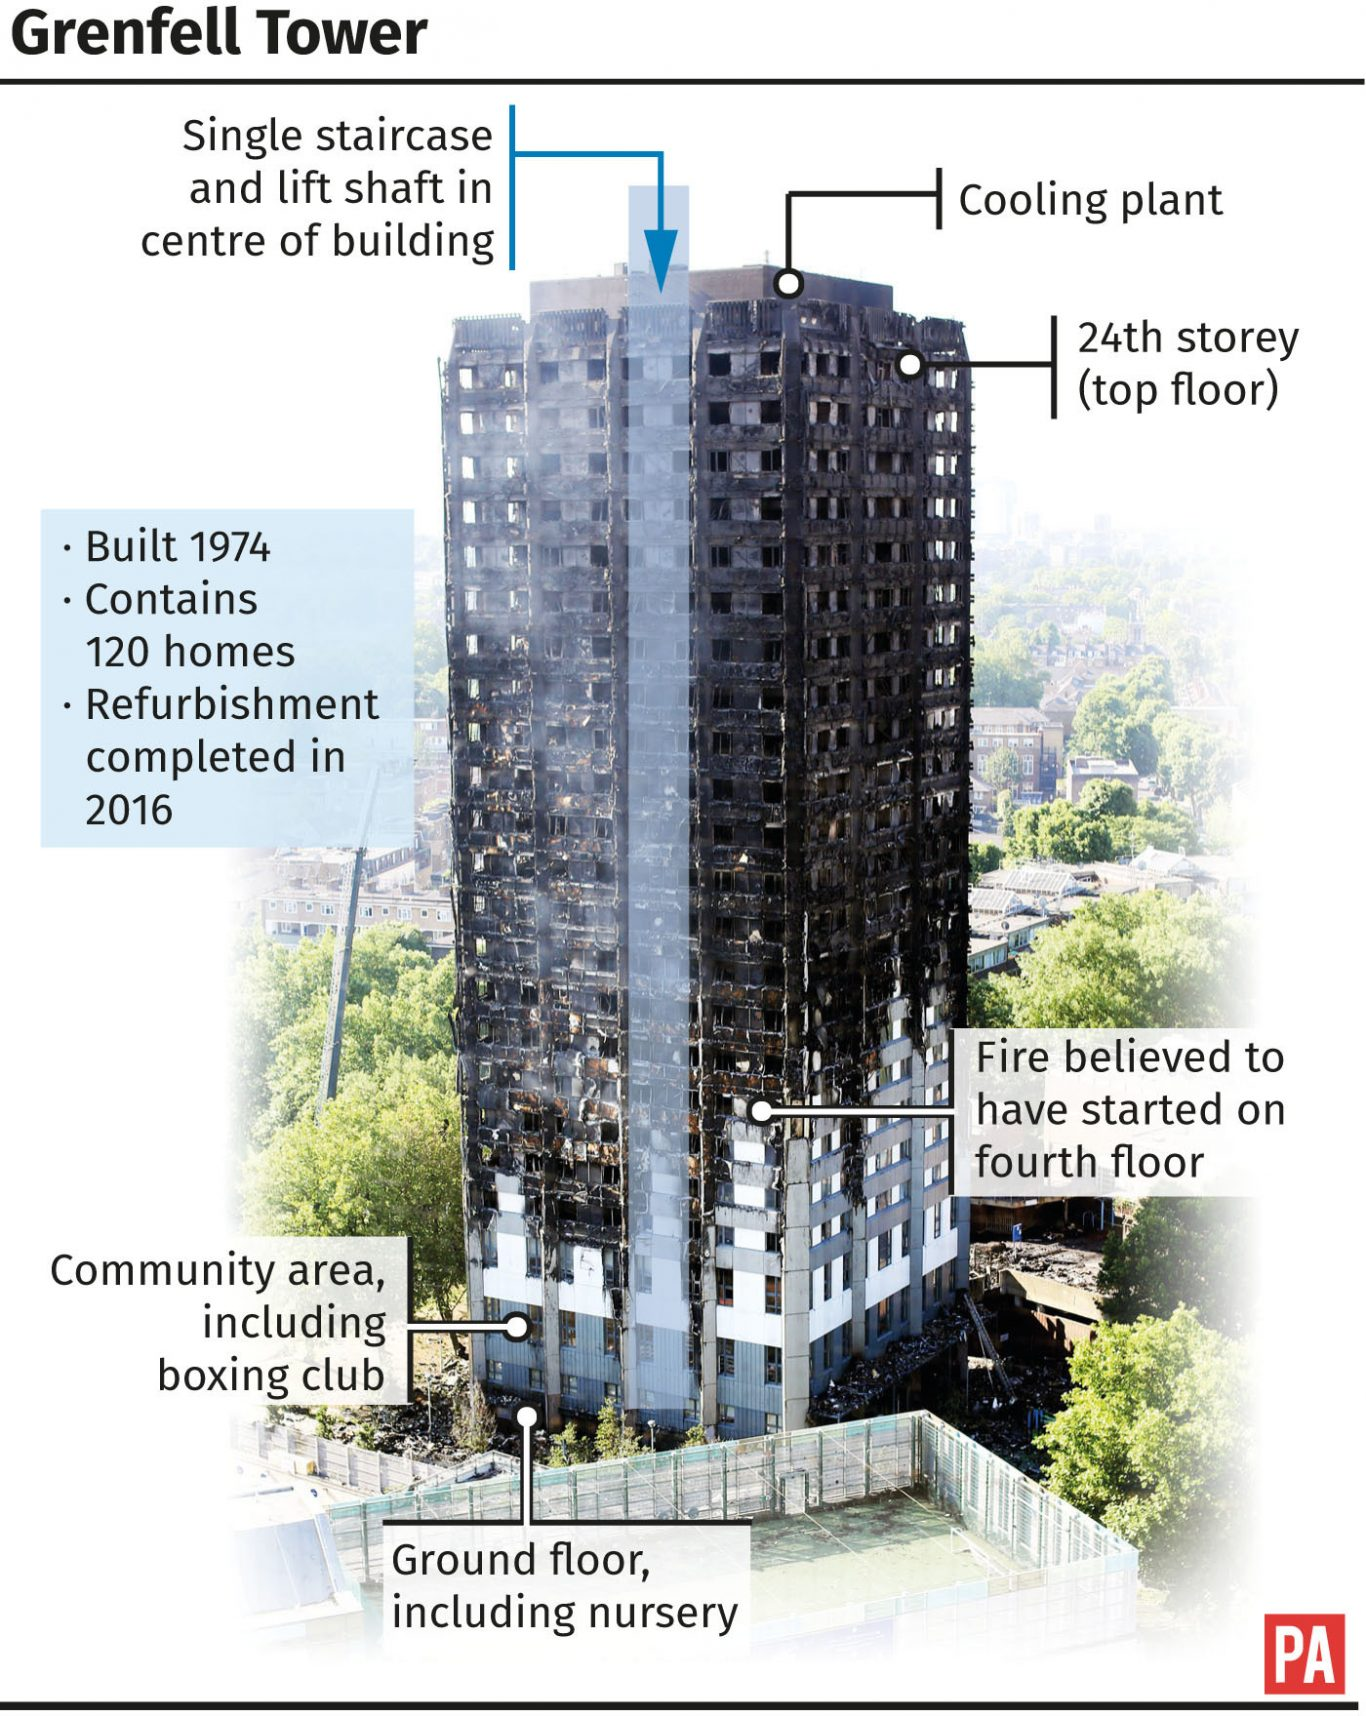 Cladding used in Grenfell Tower banned in United Kingdom , says govt